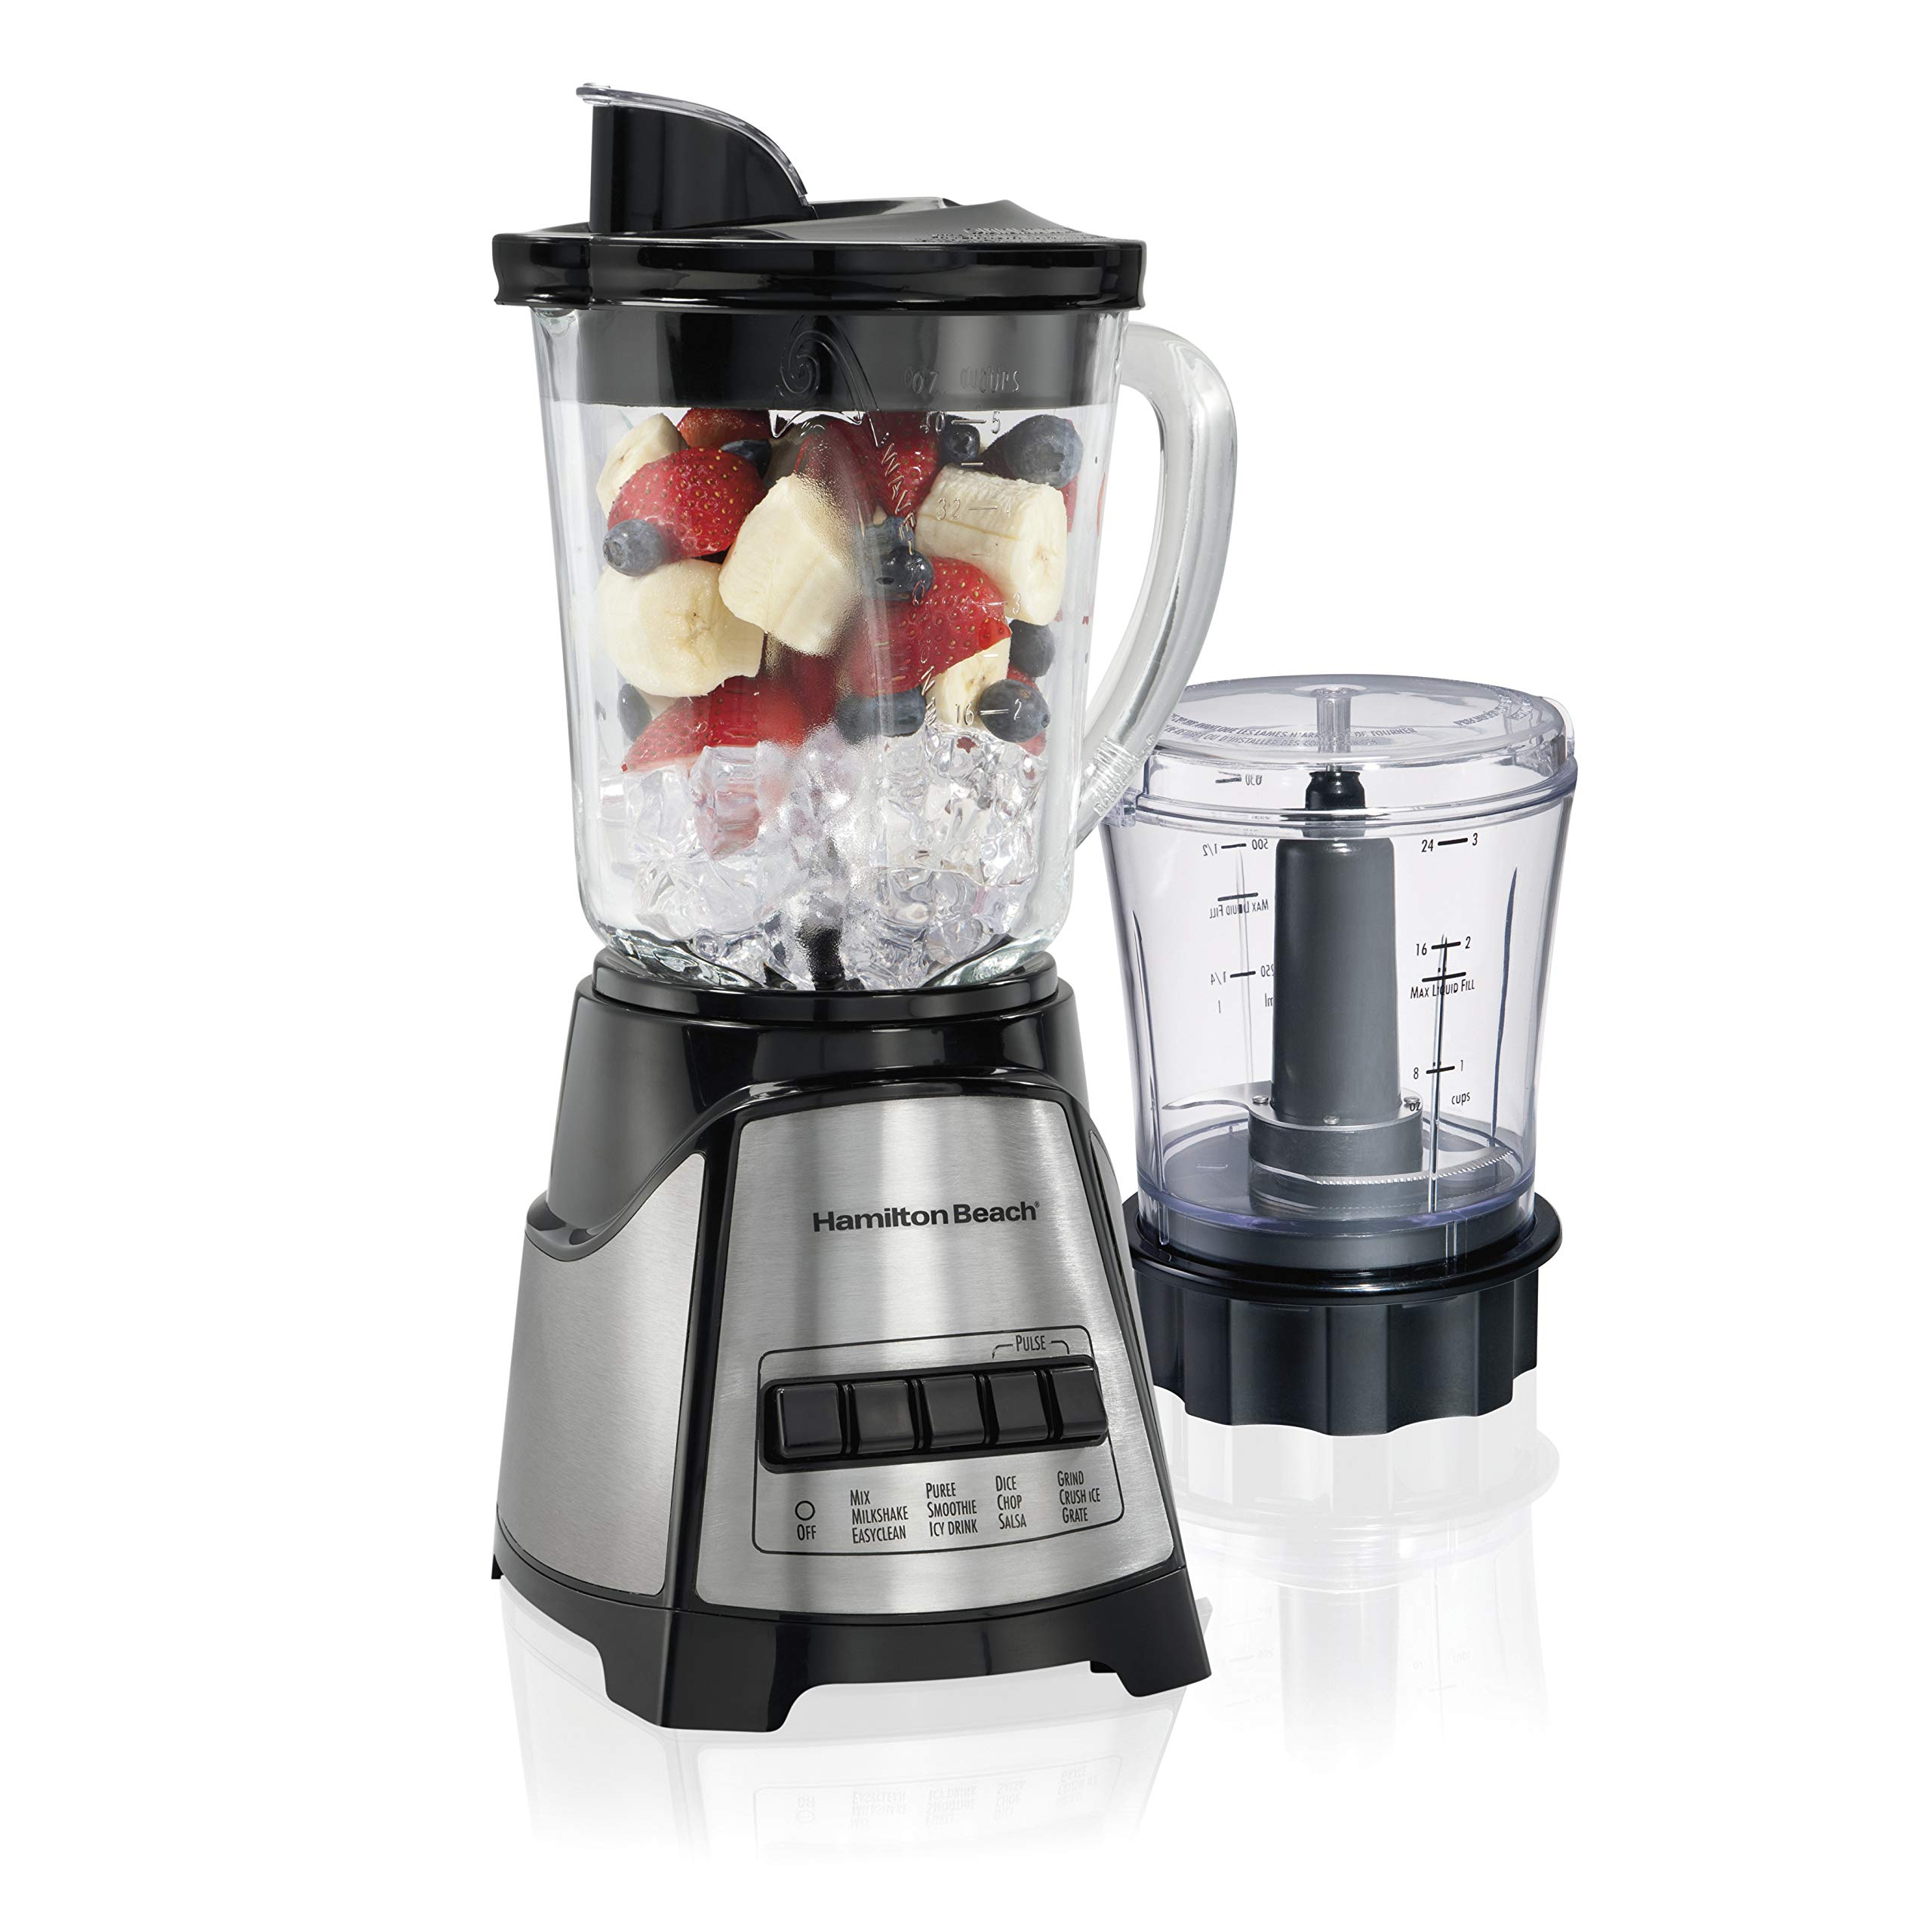 Hamilton Beach Power Elite Blender with 40oz Glass Jar and 3-Cup Vegetable Chopper, 12 Functions for Puree, Ice Crush, Shakes and Smoothies, Black and Stainless Steel (58149) by Hamilton Beach